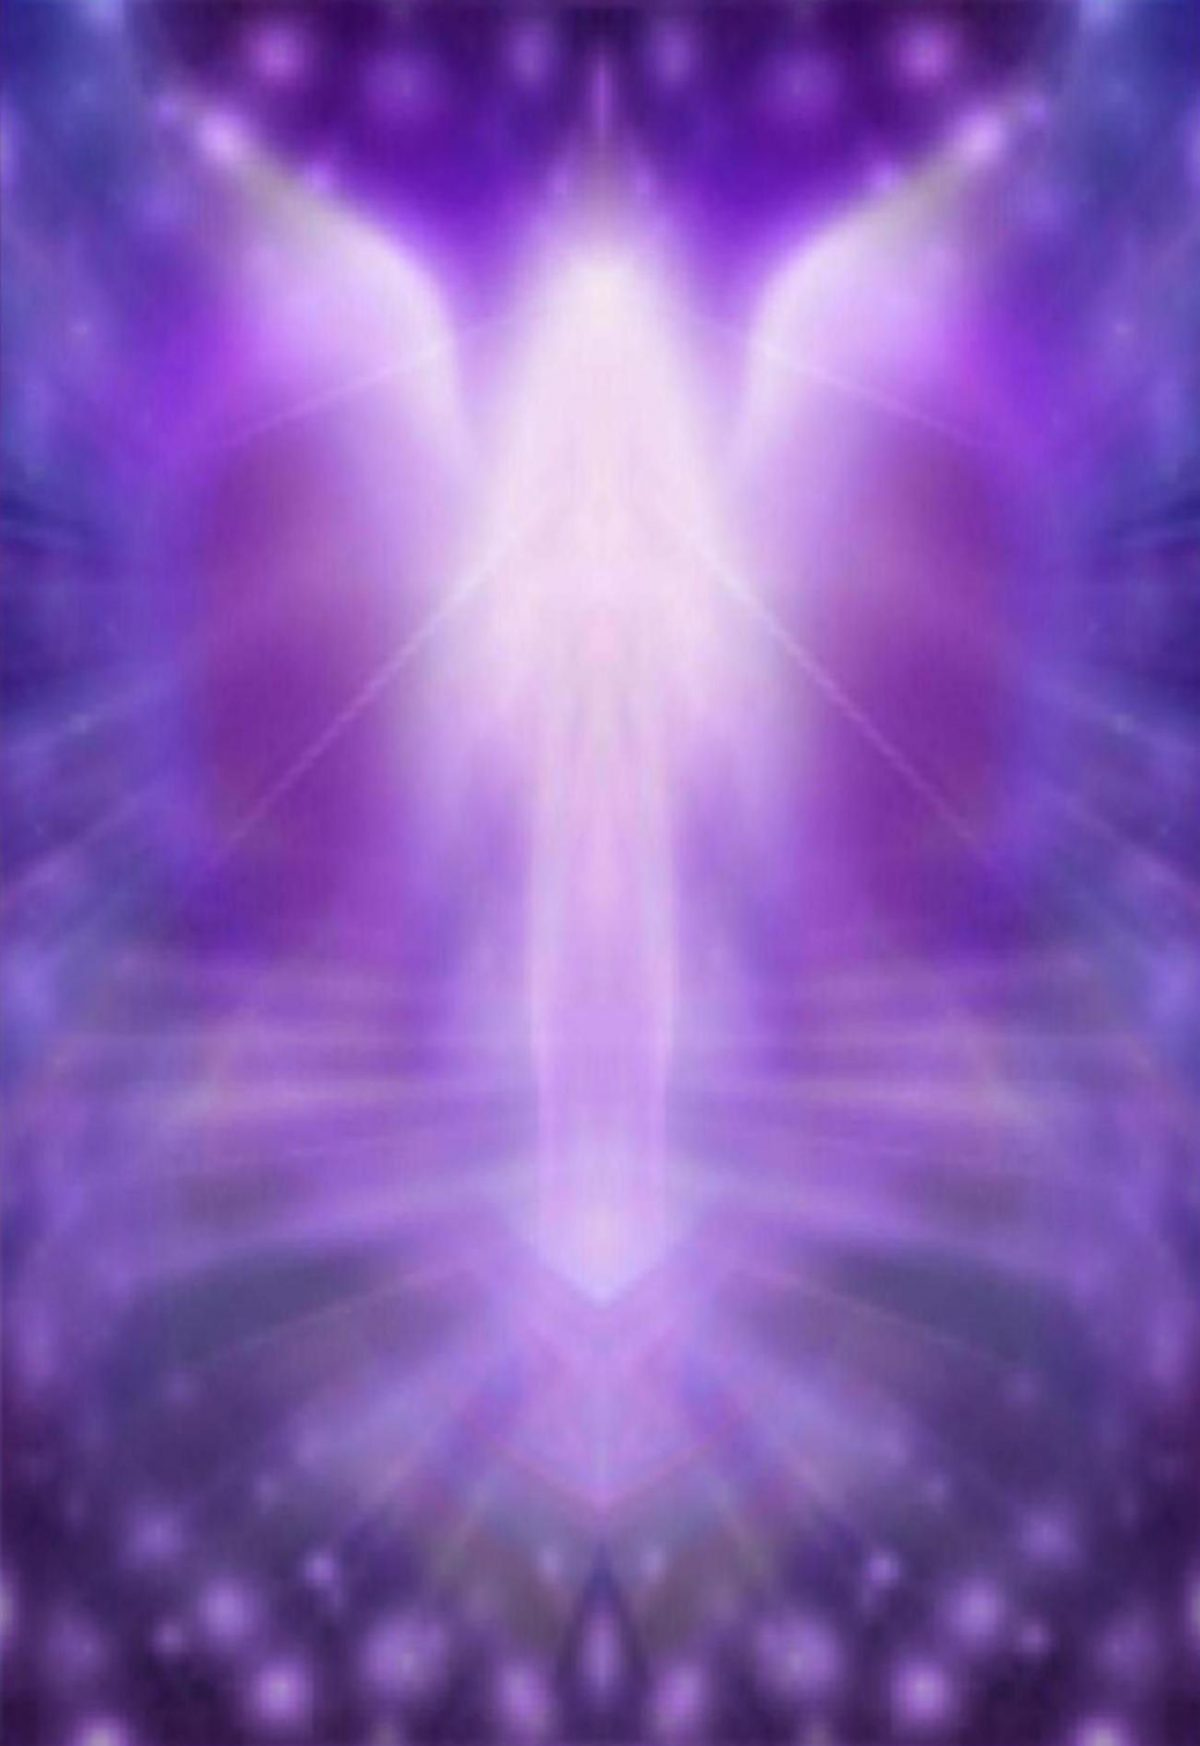 Signs from Angels | Crystal Heart psychics | Psychic Readings Where The Heart Matters